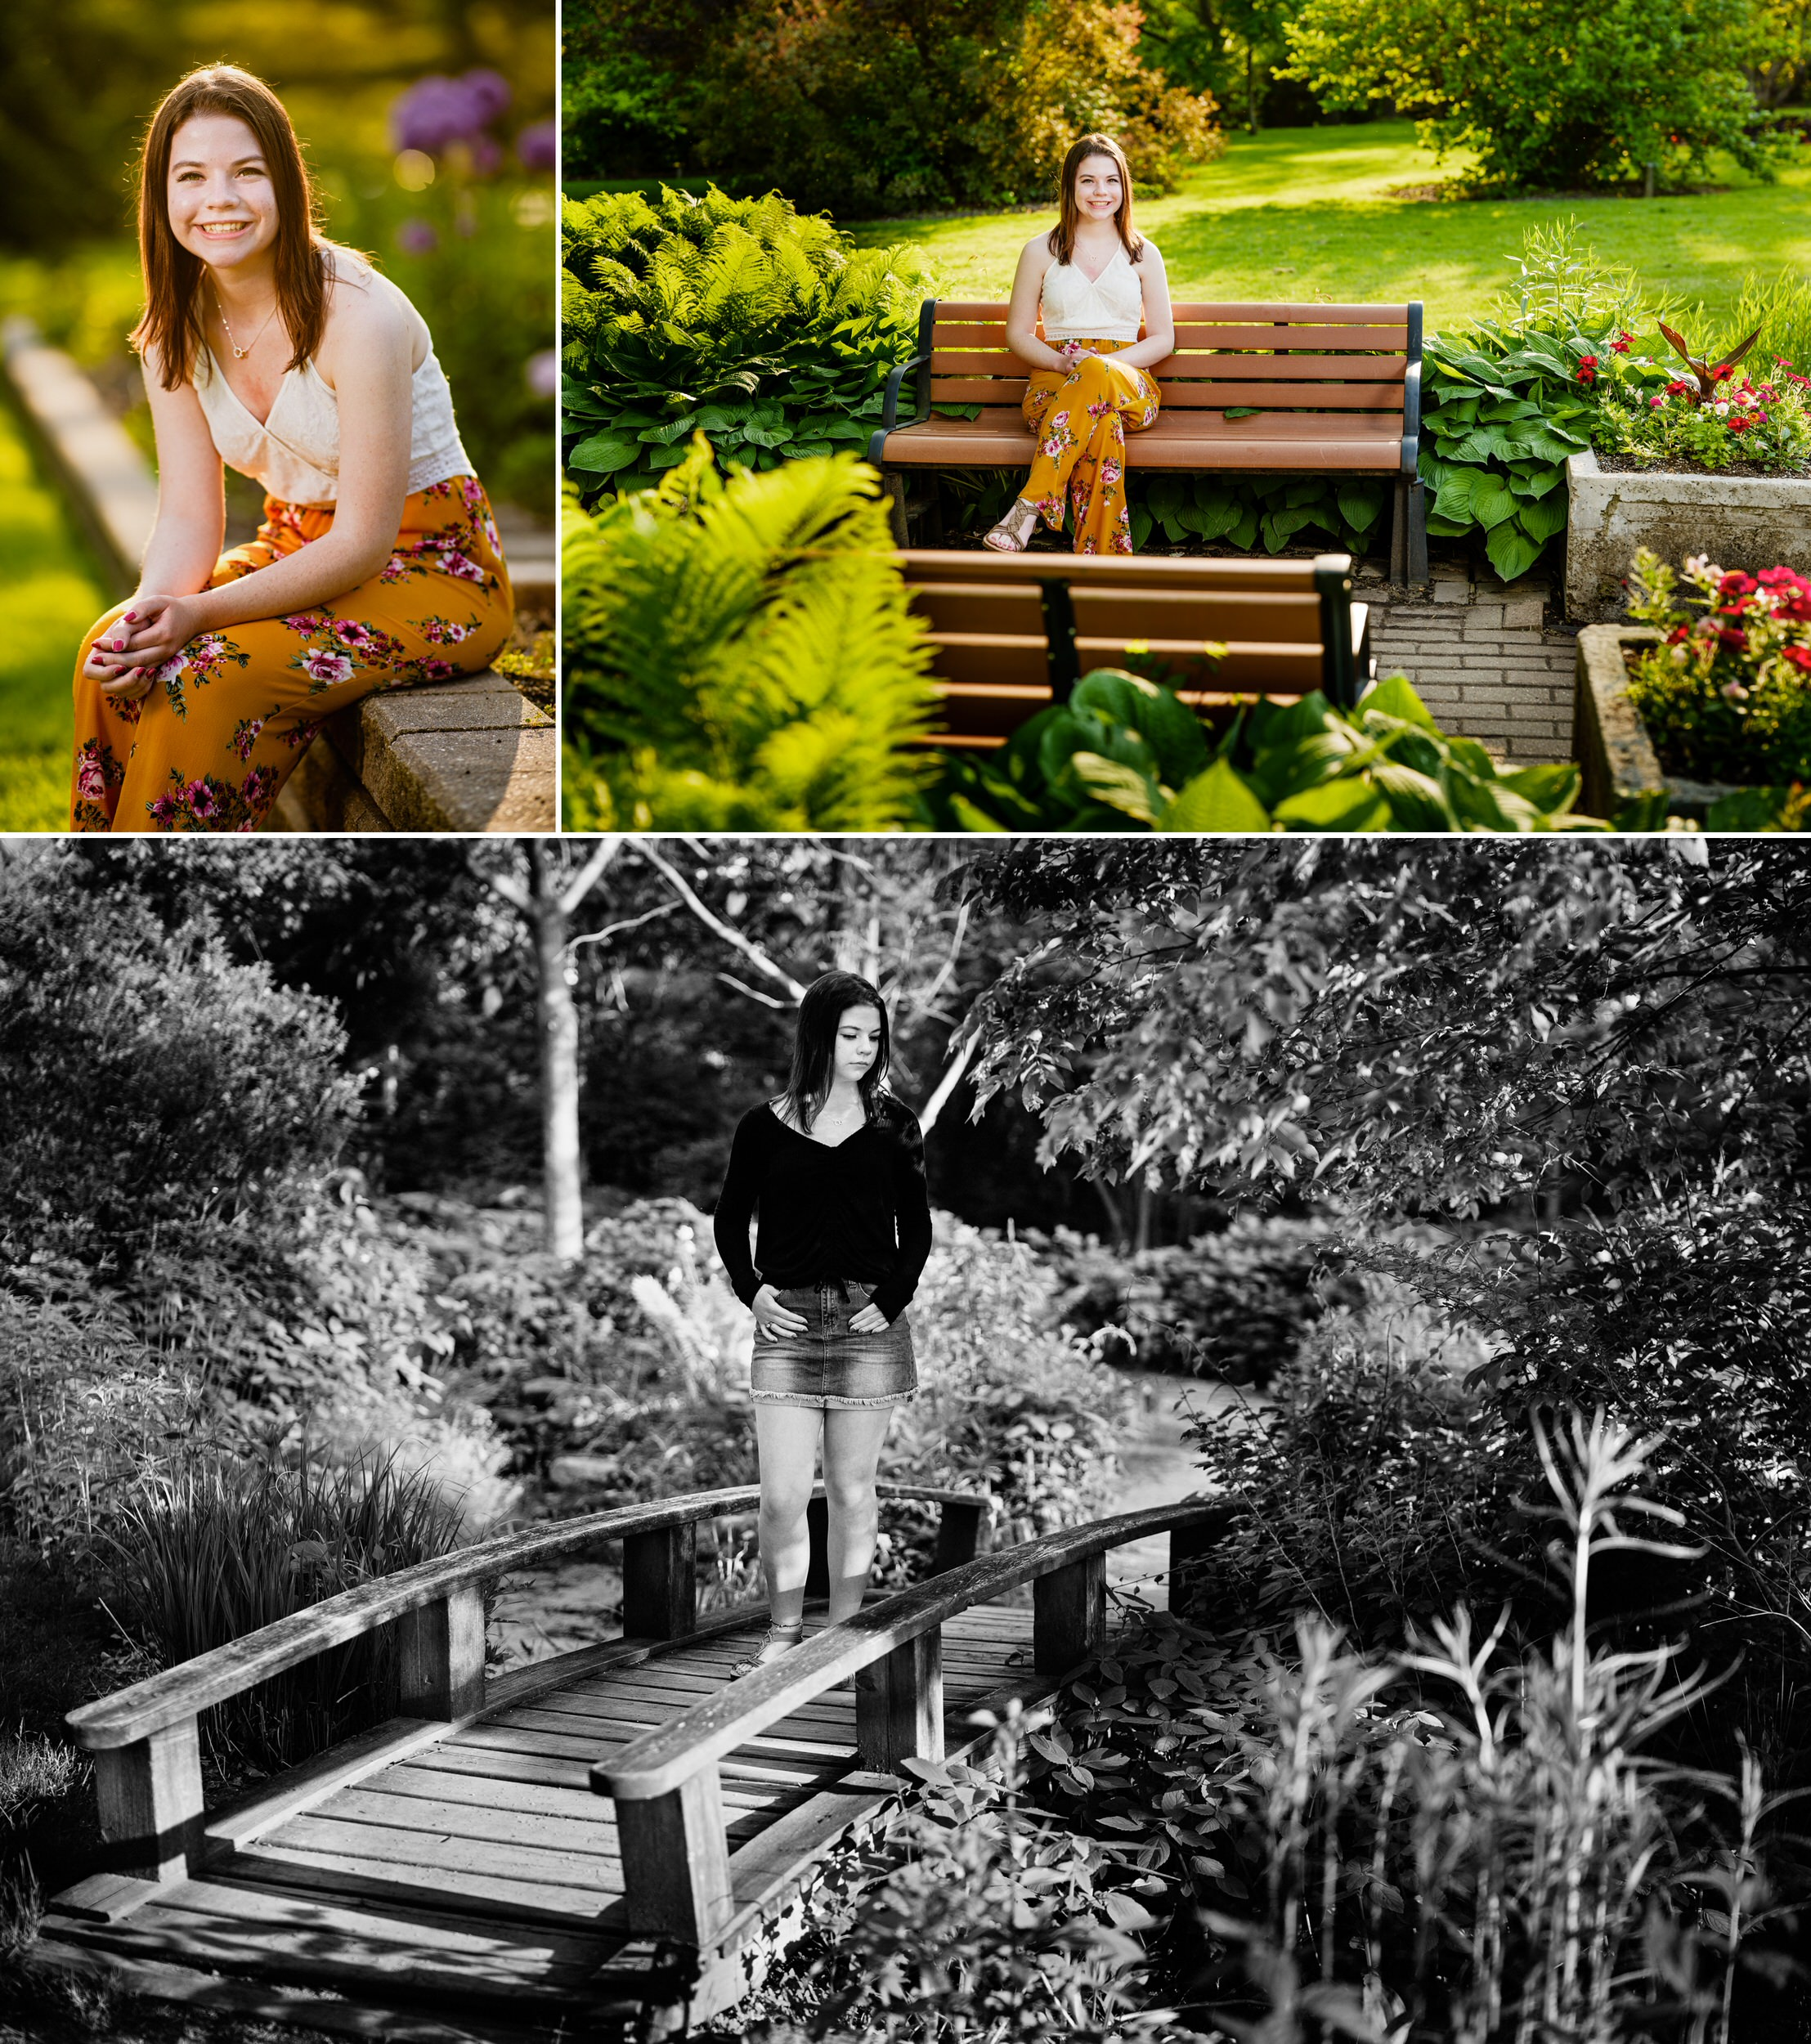 Senior photos at Ogden Garden.